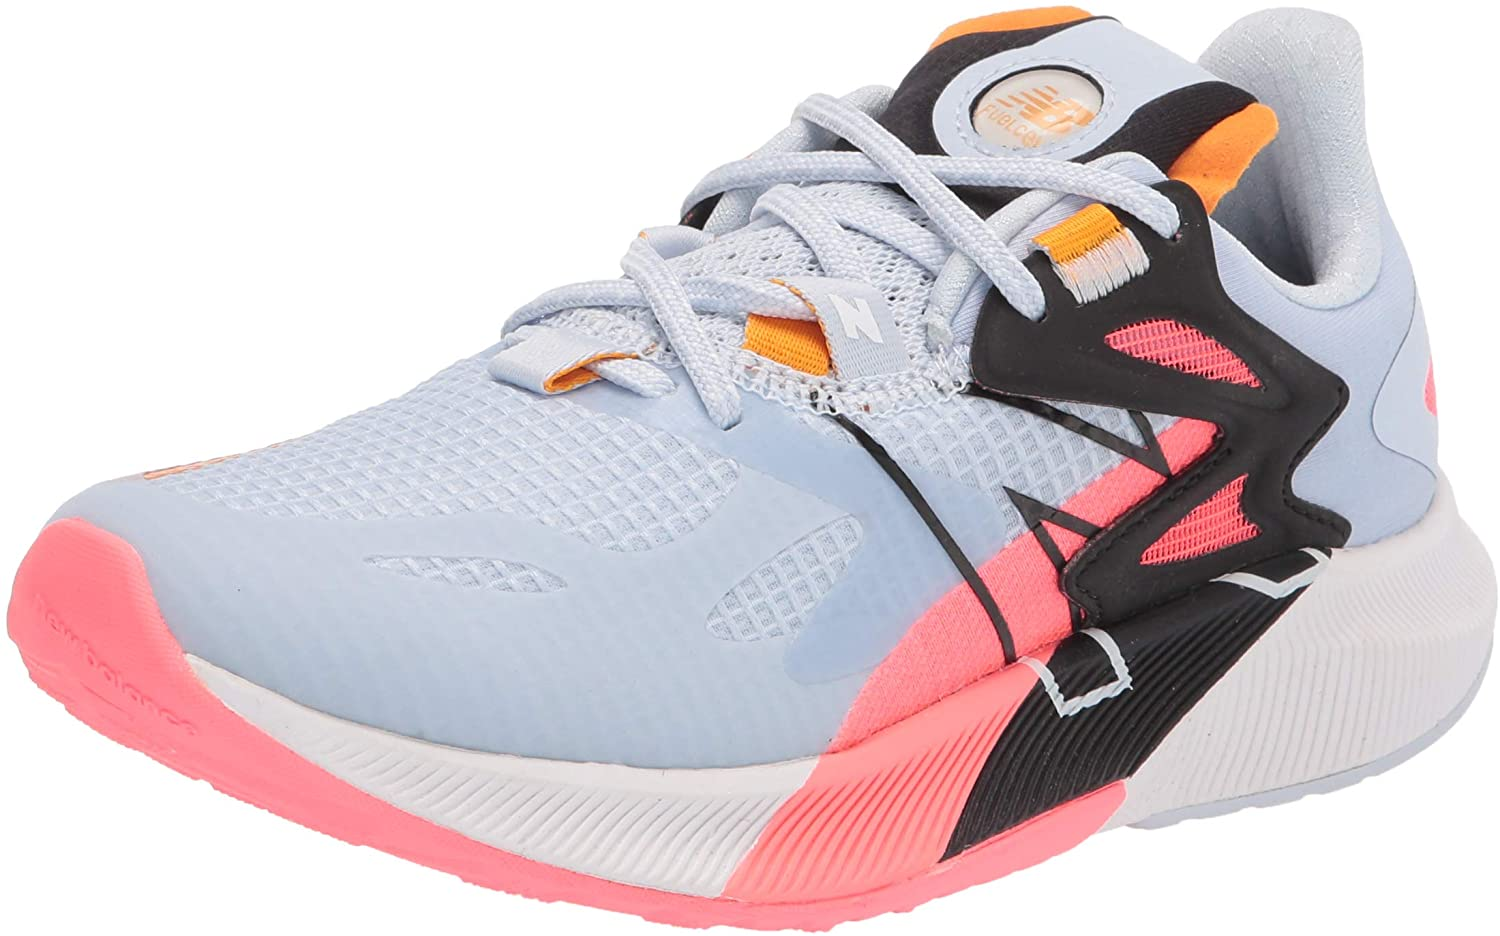 New Balance Women's New products, world's highest quality popular! FuelCell Propel Speed Shoe service Running RMX V1